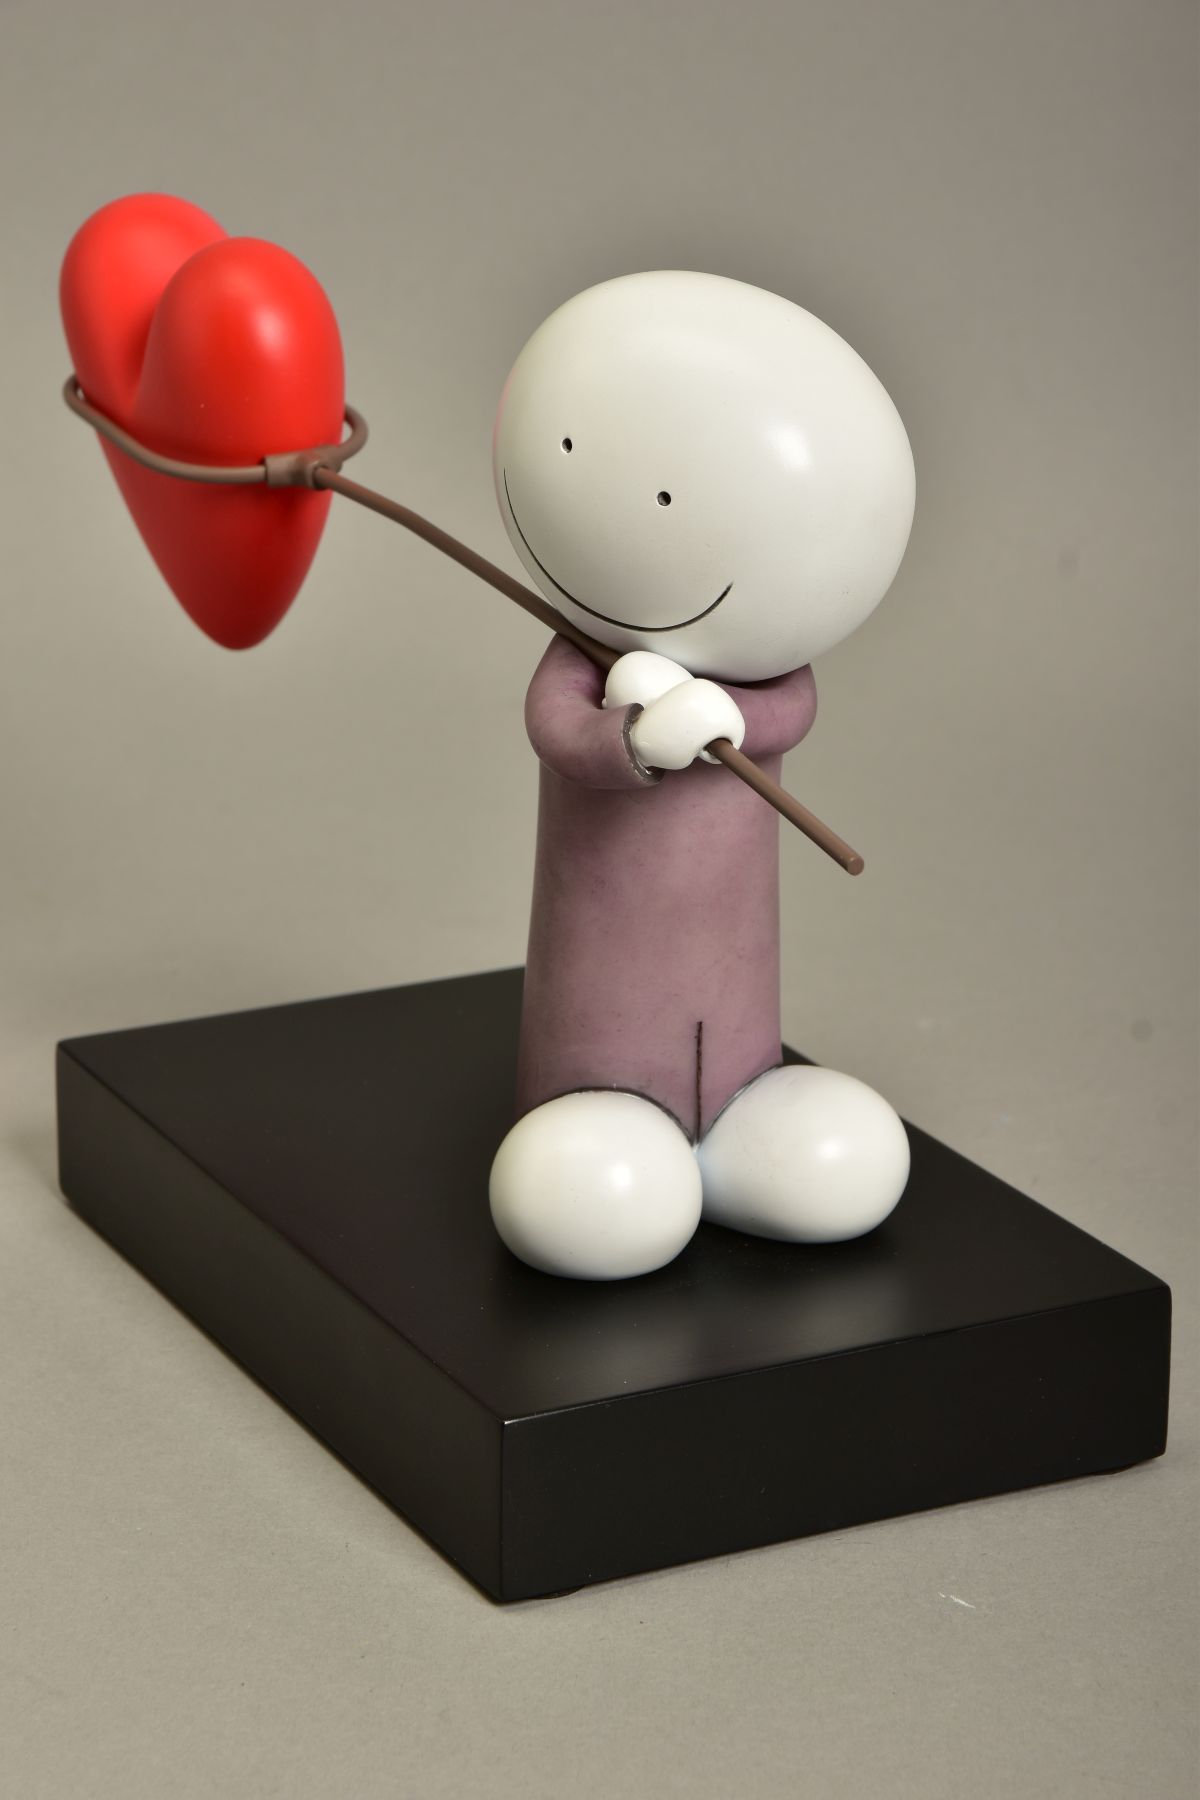 DOUG HYDE (BRITISH 1972) 'CAUGHT IN LOVE', a limited edition sculpture of a figure carrying a net - Image 4 of 5